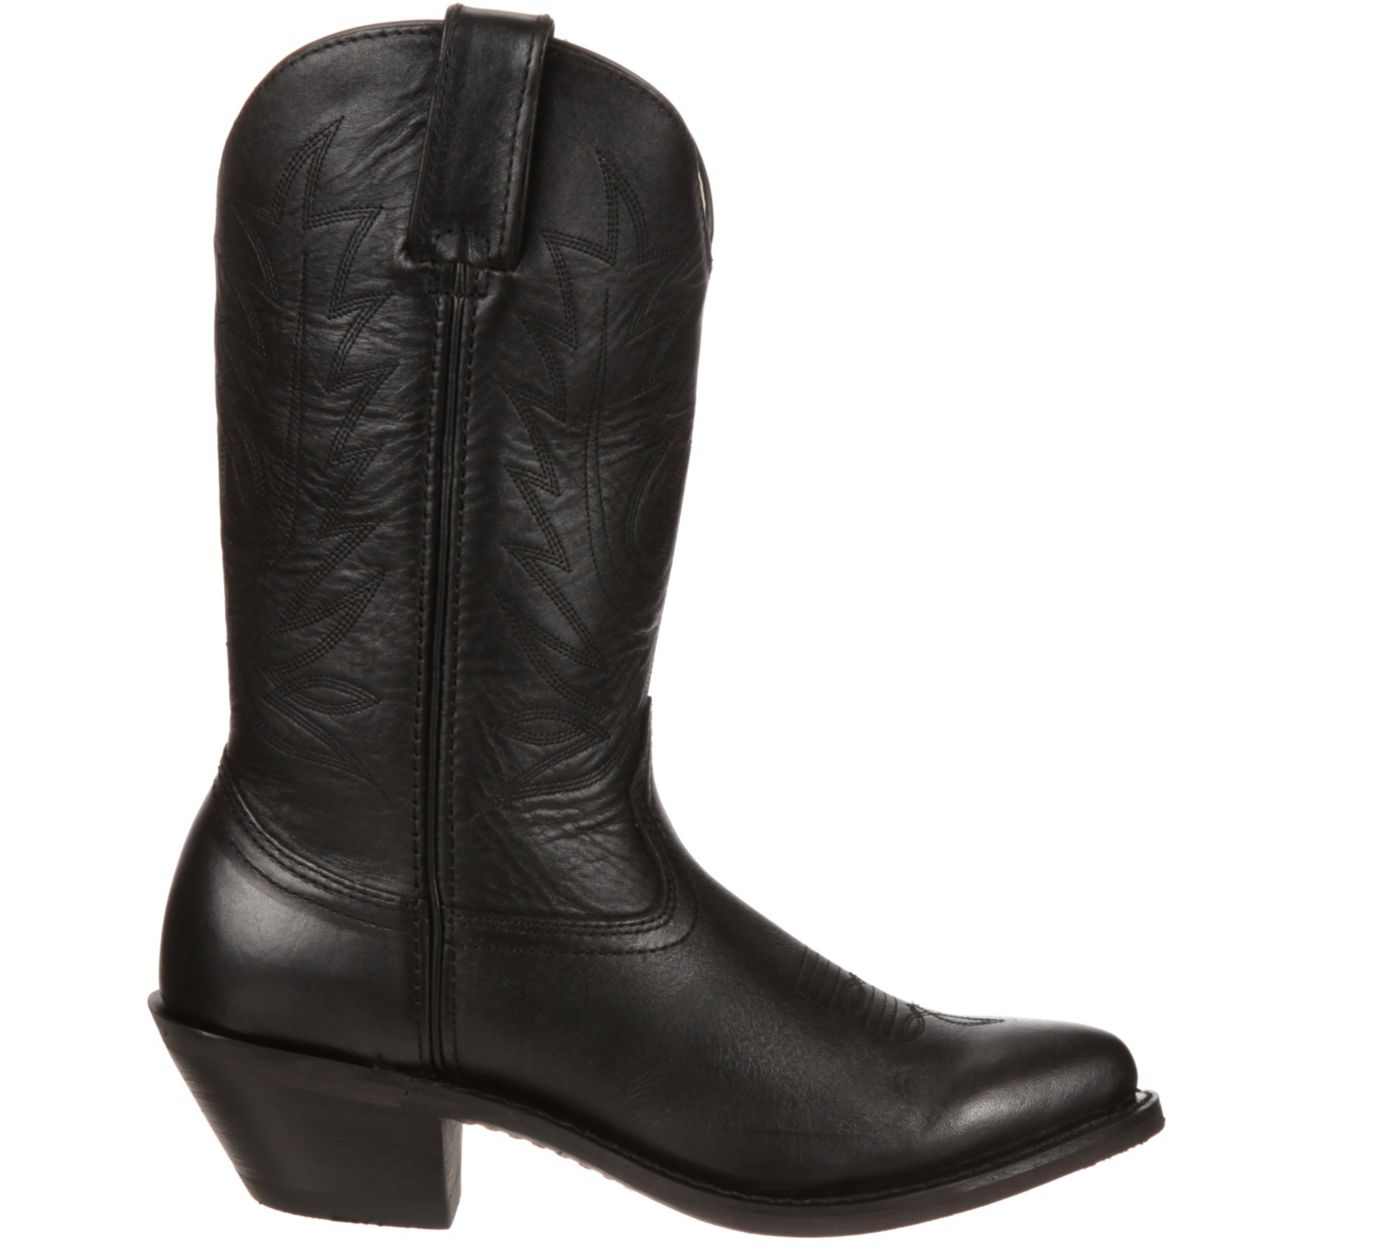 Durango Women's Black Leather Western Boots